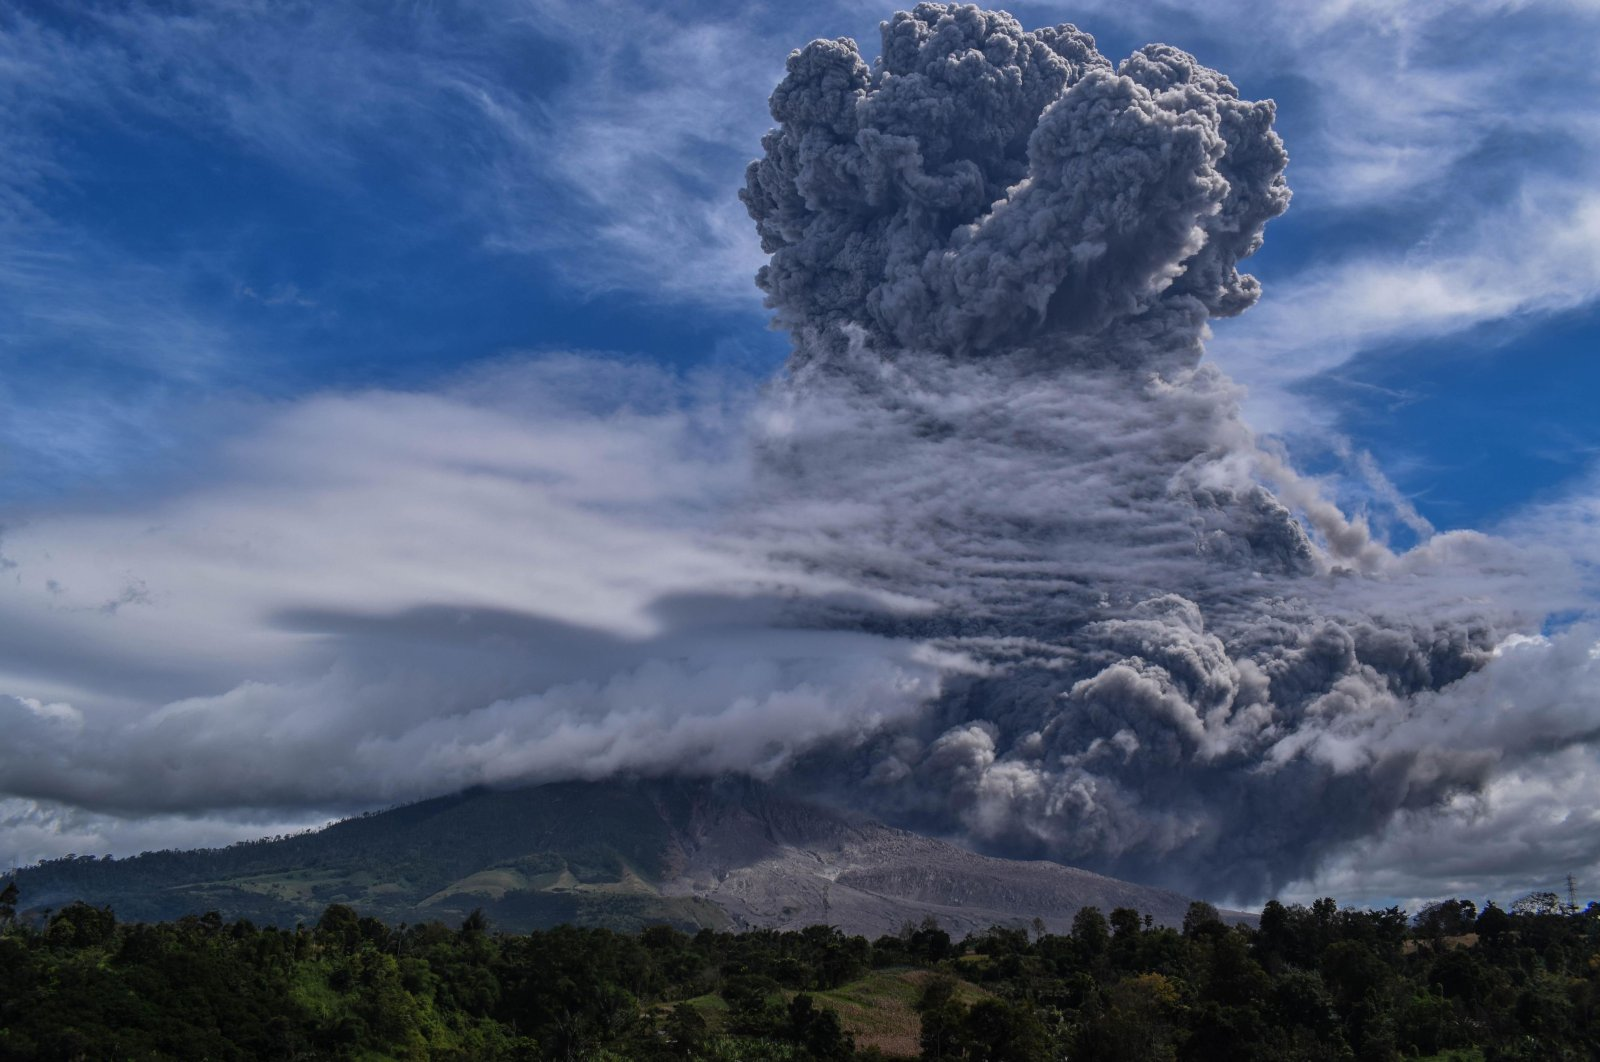 Mount Sinabung spews thick ash and smoke into the sky in Karo, North Sumatra on Aug. 10, 2020. (AFP Photo)